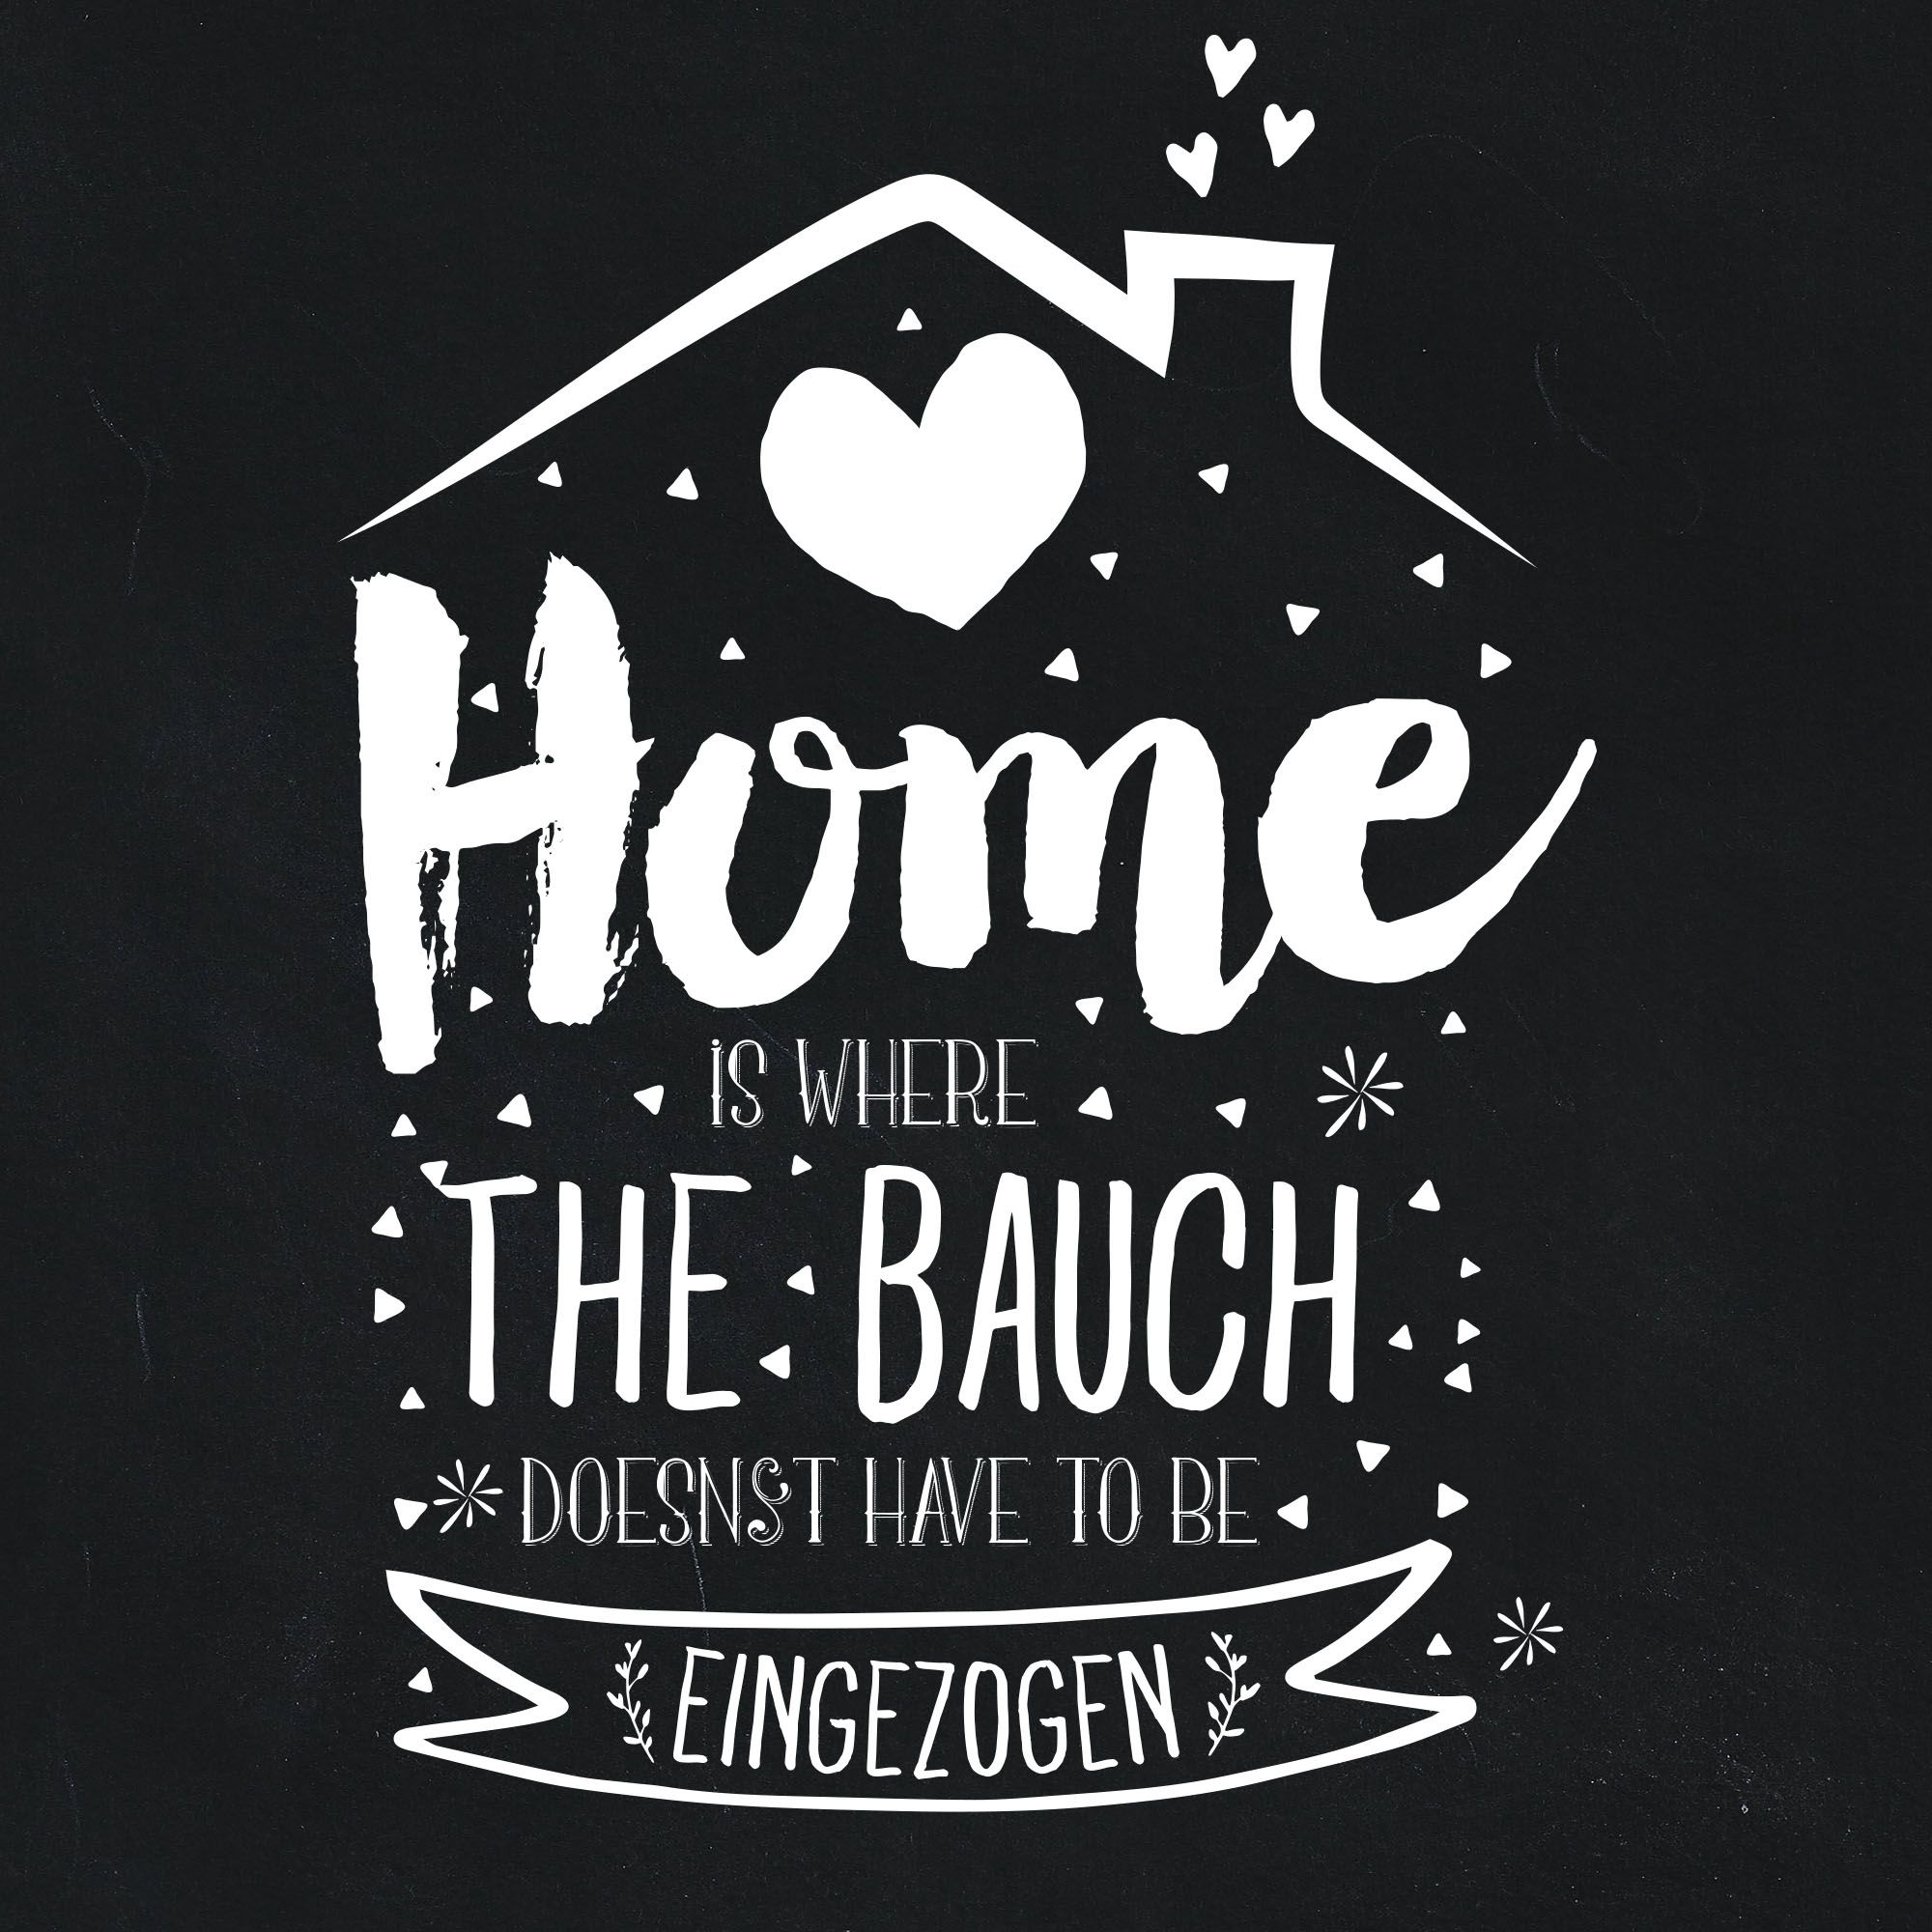 Home Is Where The Bauch Doesn T Have To Be Eingezogen Personello Visual Statements